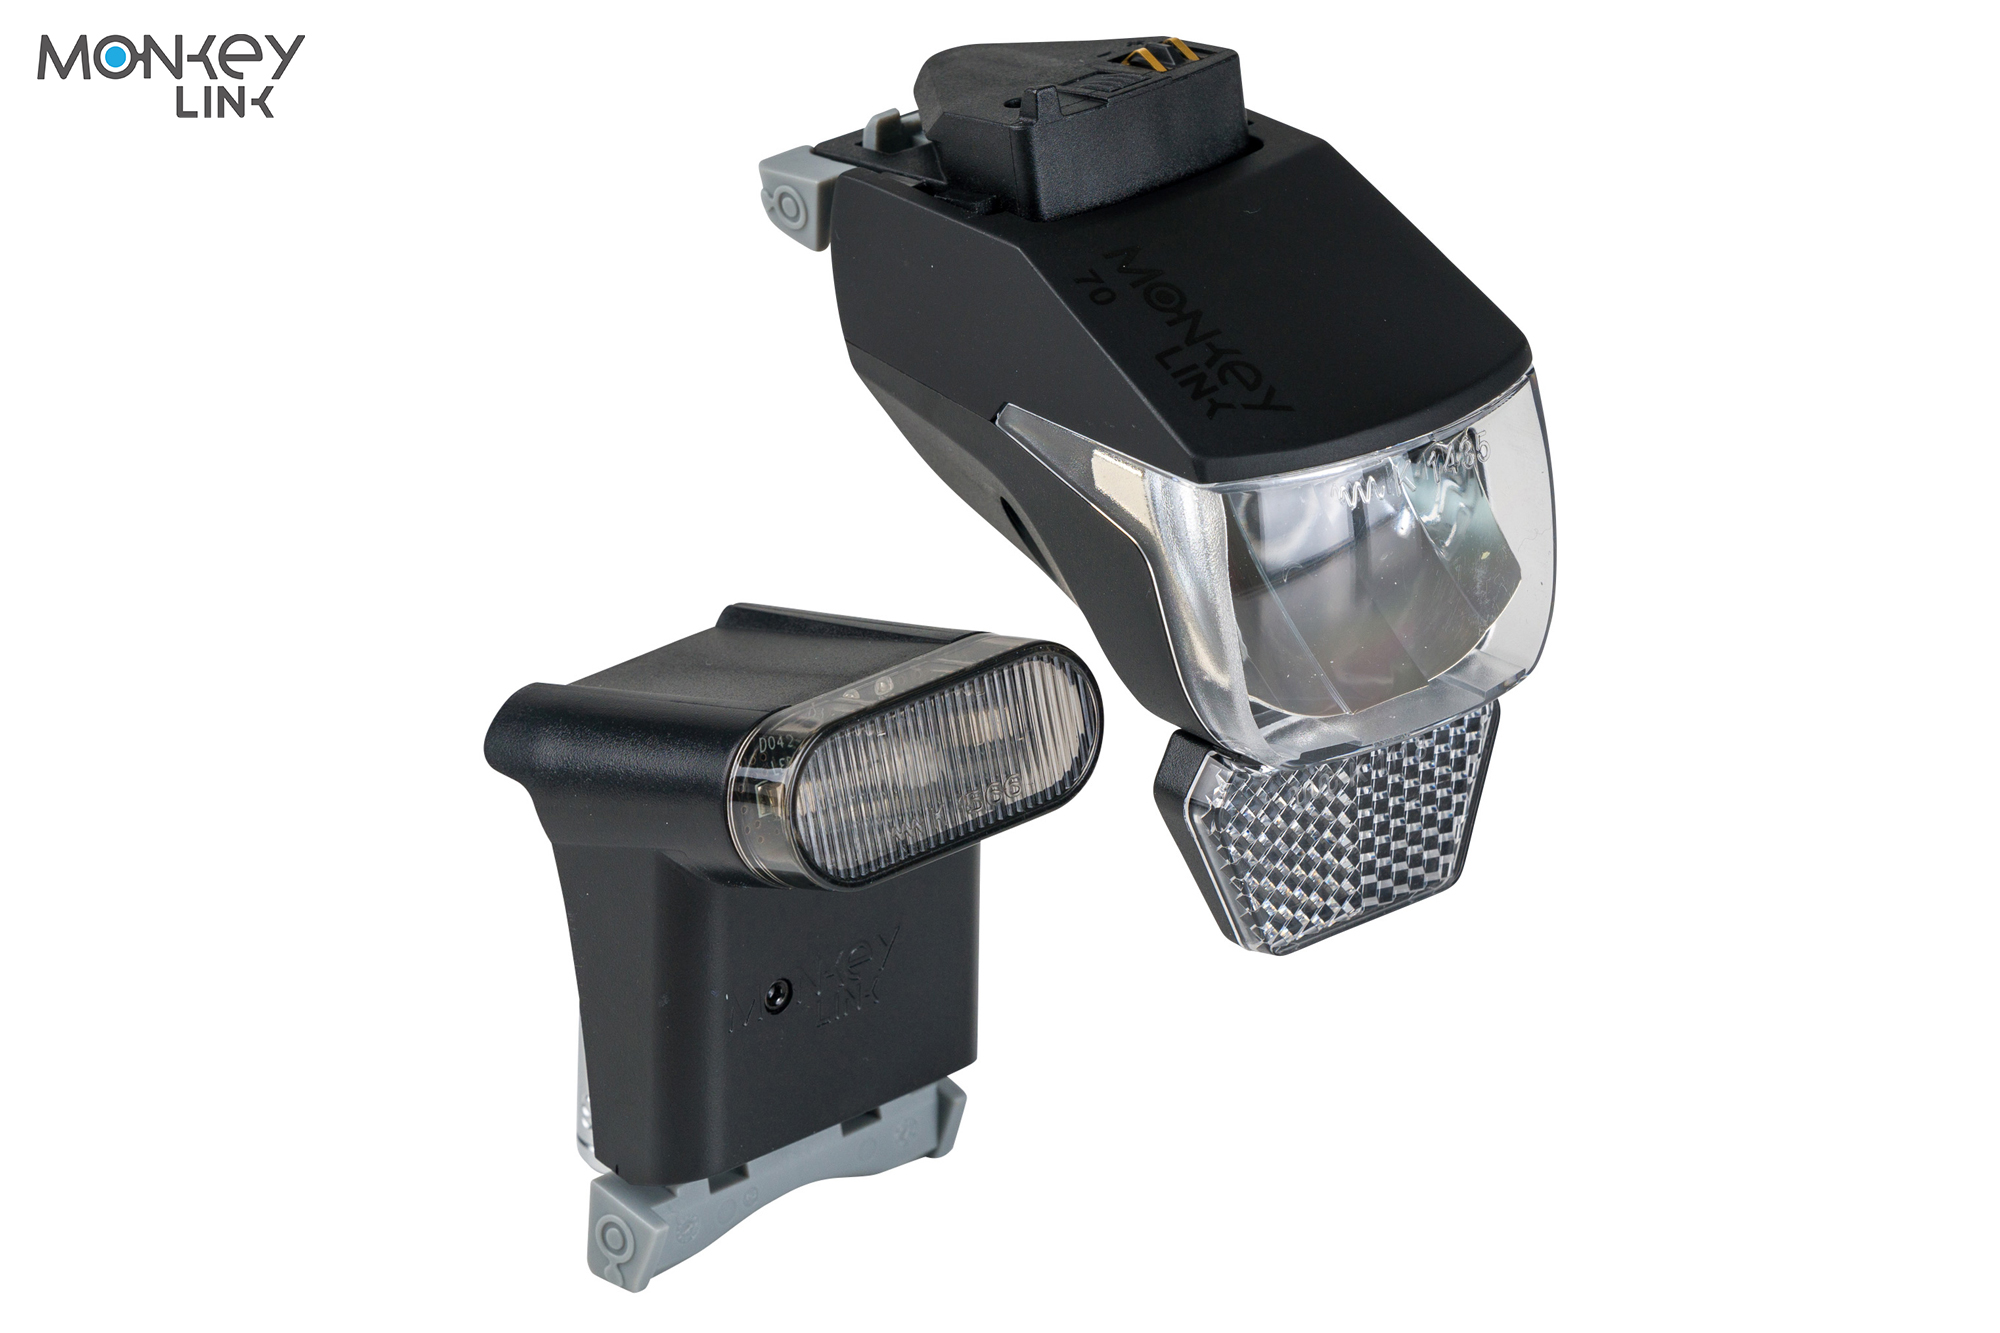 MonkeyLink ML-MonkeyLight 100 Lux Set Connect S